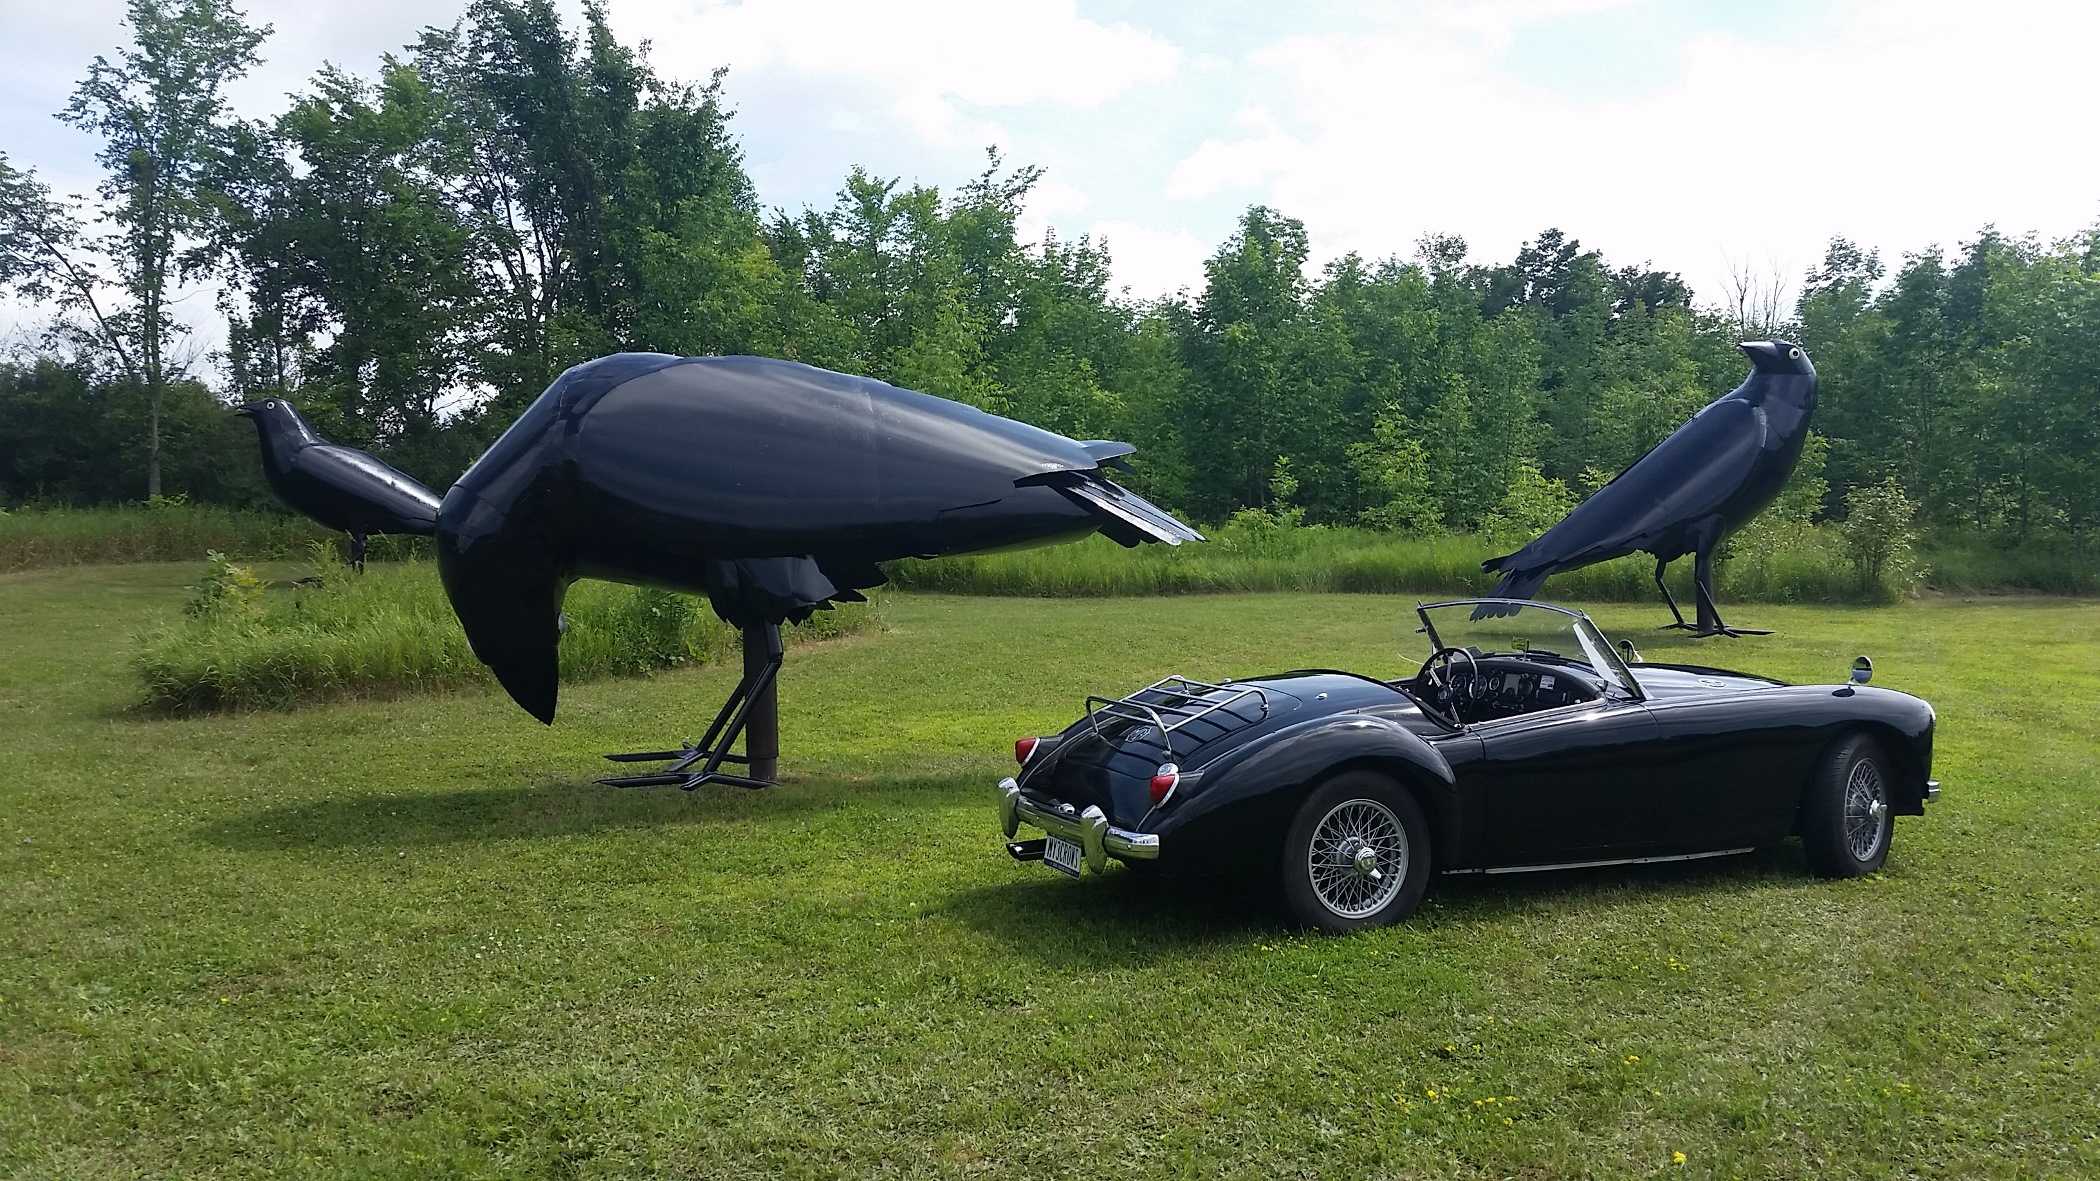 1959 MGA with Crows